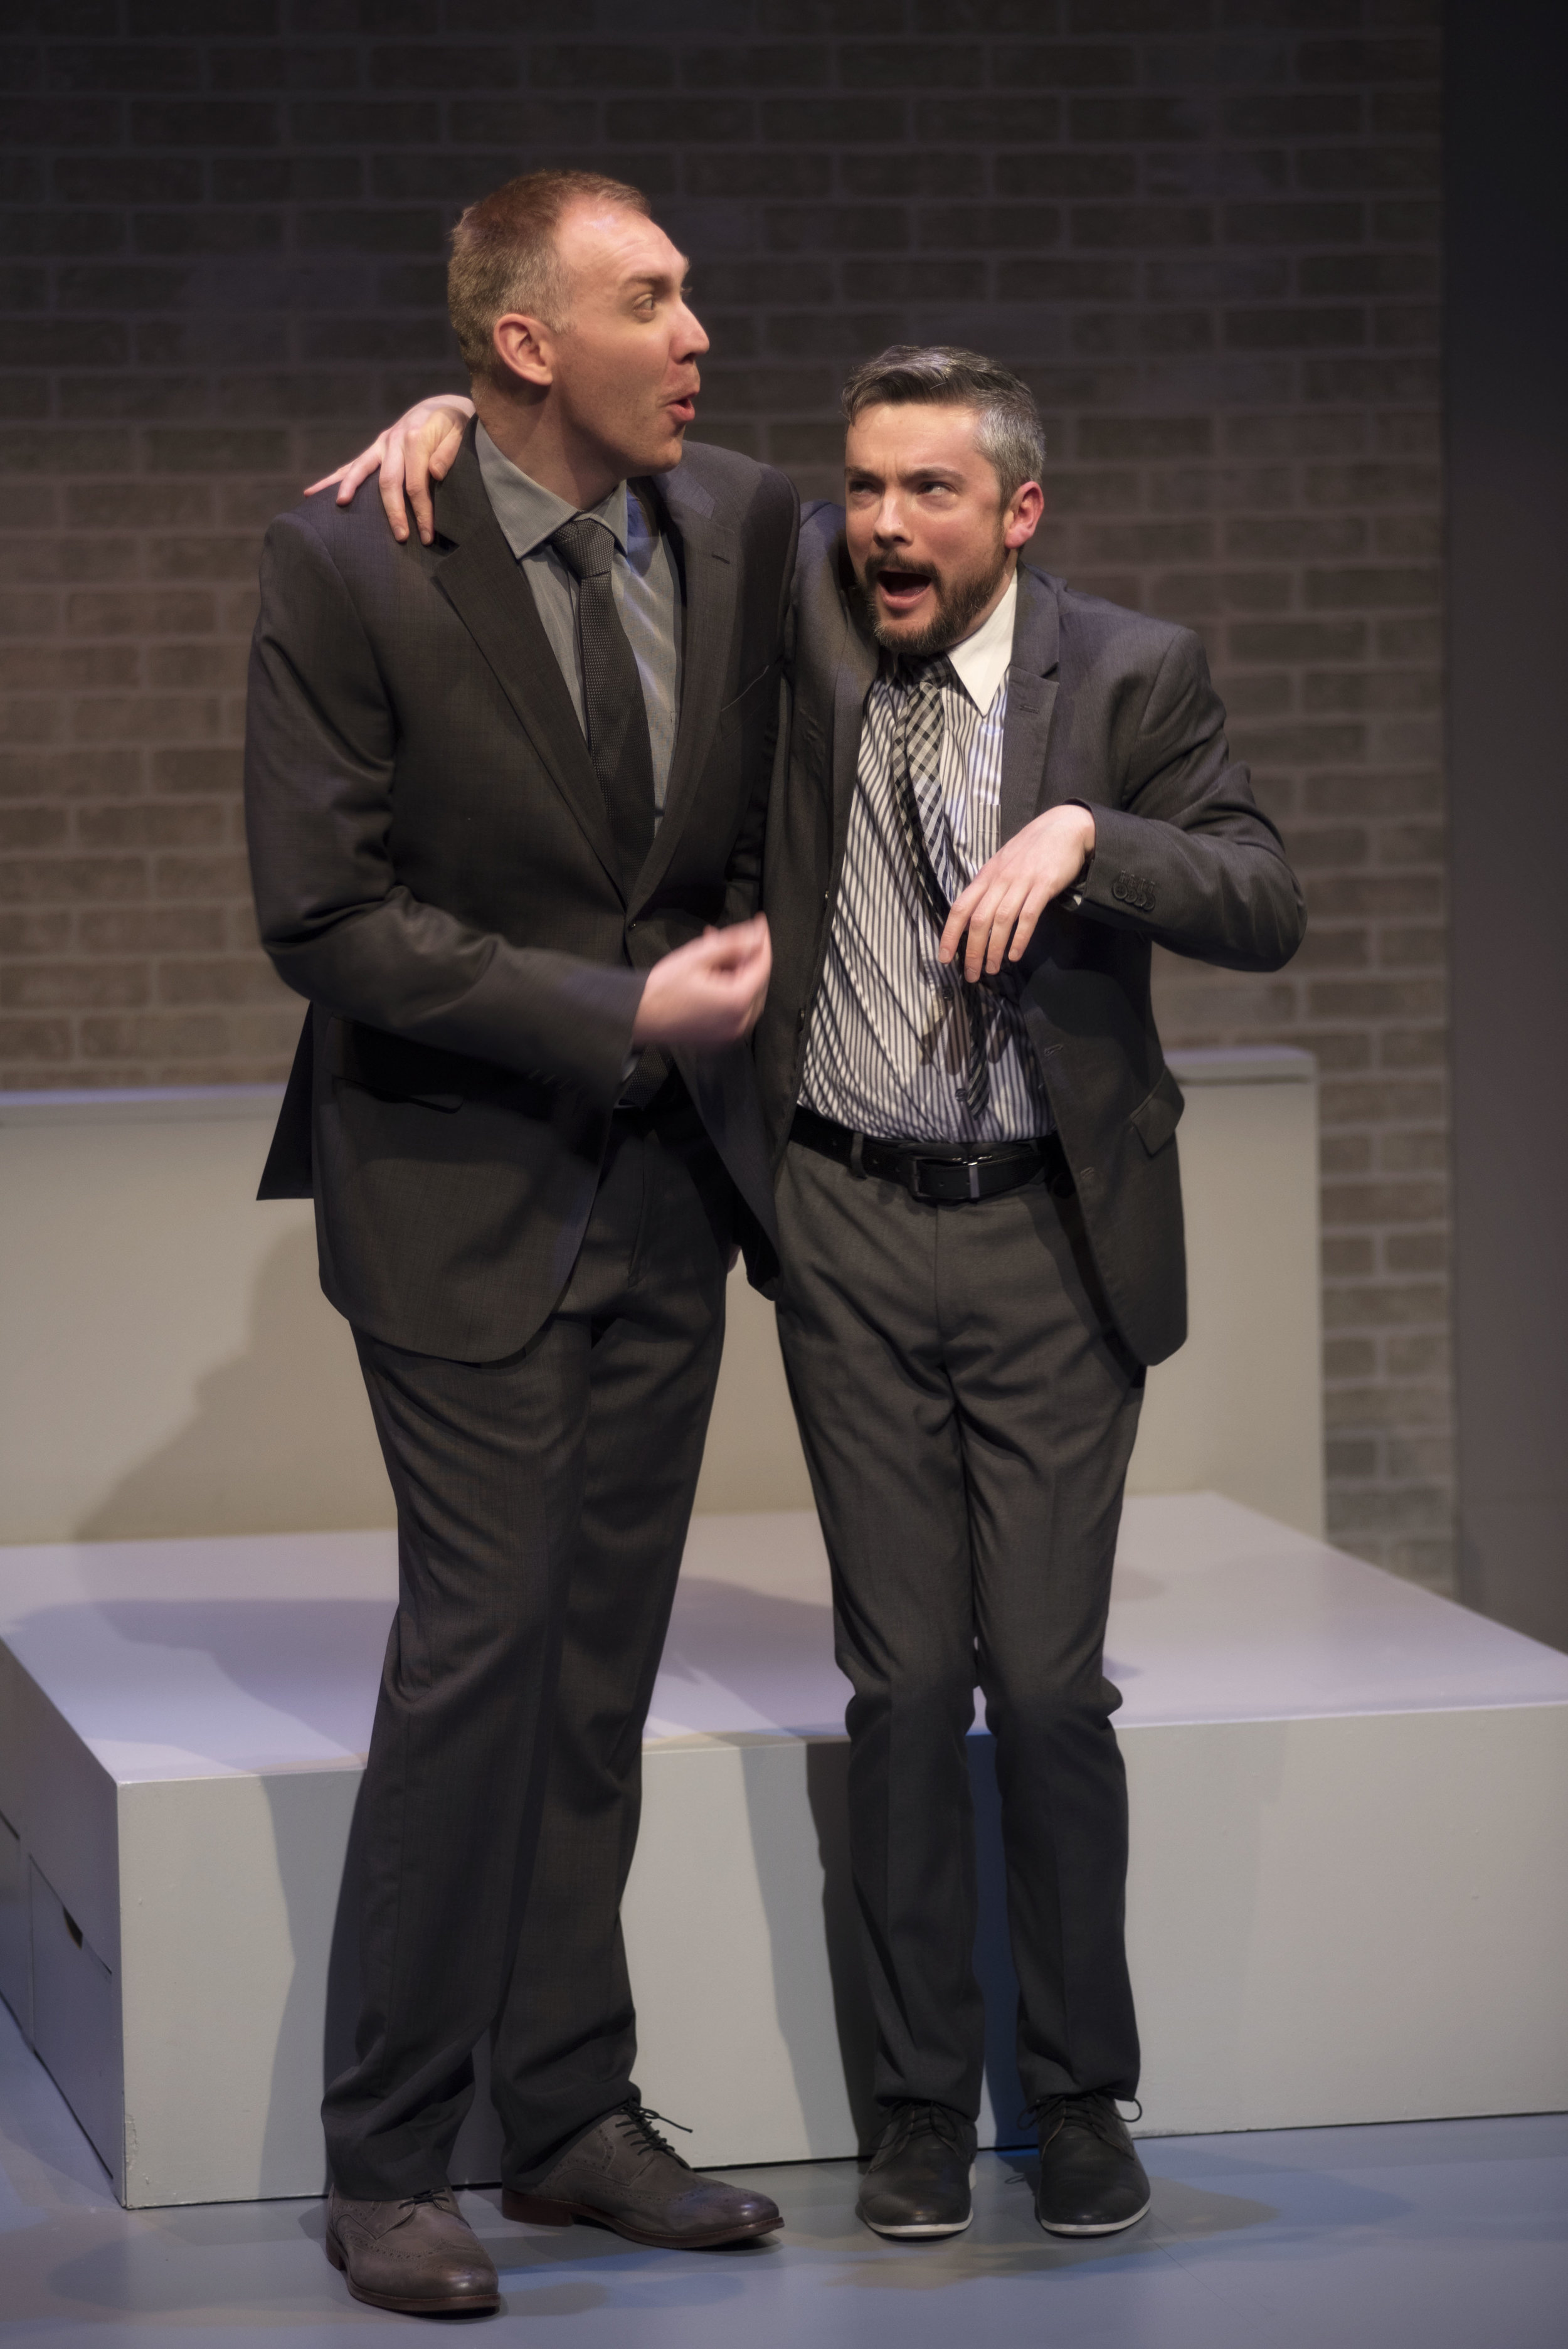 Mark Crawford and Paul Dunn in Centaur Theatre's production of  Bed and Breakfast . Set and costume design by Dana Osborne and lighting design by Rebecca Picherack. Photo by Andrée Lanthier.